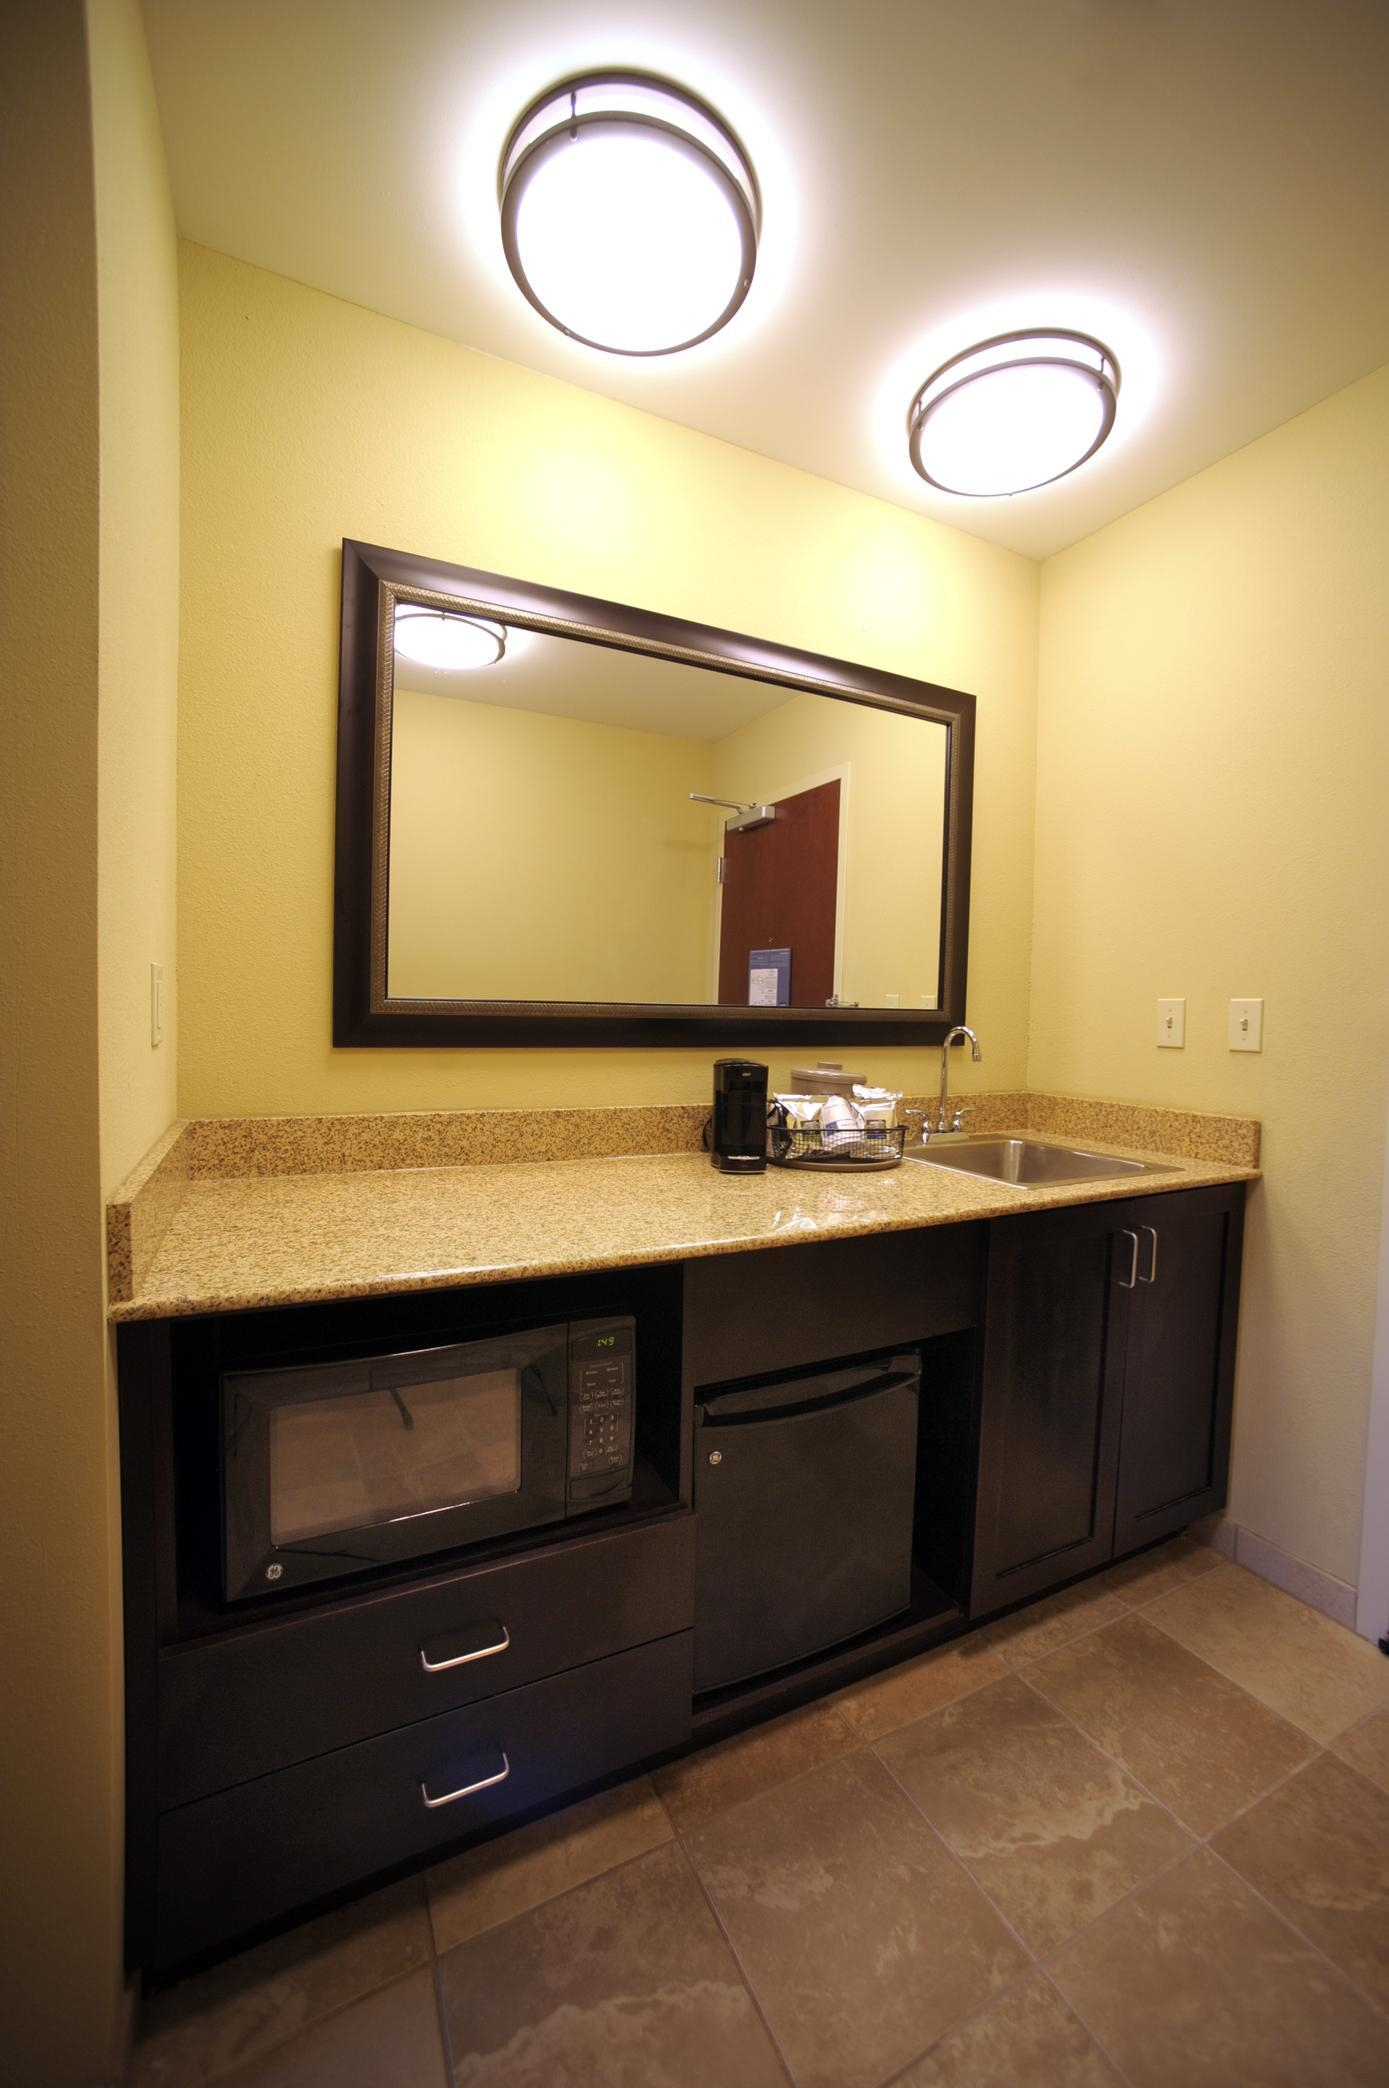 Hampton Inn & Suites Chadds Ford image 21